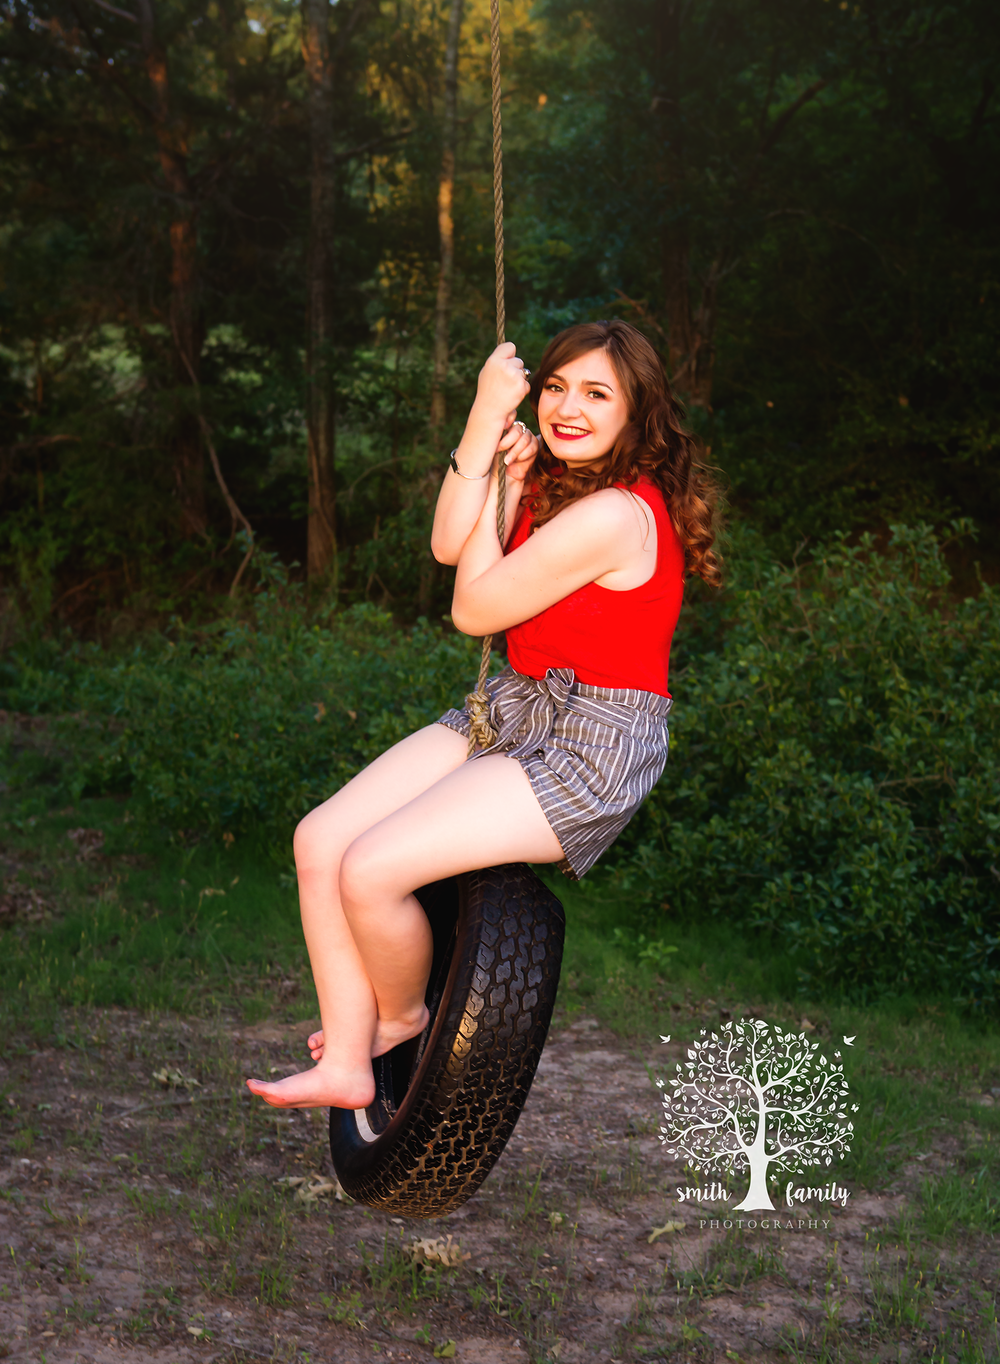 """I was blessed to be gifted a session with Anna by a sweet friend. I opted to use the session for my granddaughter's Senior pictures and did I ever make the right decision!! Anna took us to her family land where there were beautiful trees, a tire swing, cactus, a covered bridge and a small cabin. The pictures that she captured with Kyleigh are AMAZING and IRREPLACEABLE!!! She was so sweet and personable and she made us all feel right at home. She was even ok wirh Kyleigh's request to shoot a few of Kyleigh and her boyfriend. I had never met Anna before the shoot but now I feel as if I've known her for a very long time. I had a terrible time with the technical aspect of everything and she was so sweet and accommodating to stay on the phone with me and walk me thru step by step, what I needed to do. All in all this experience has been flawless and so much fun and I will certainly be using Smith Family Photography for all my photography needs in the future."" - Susie A."